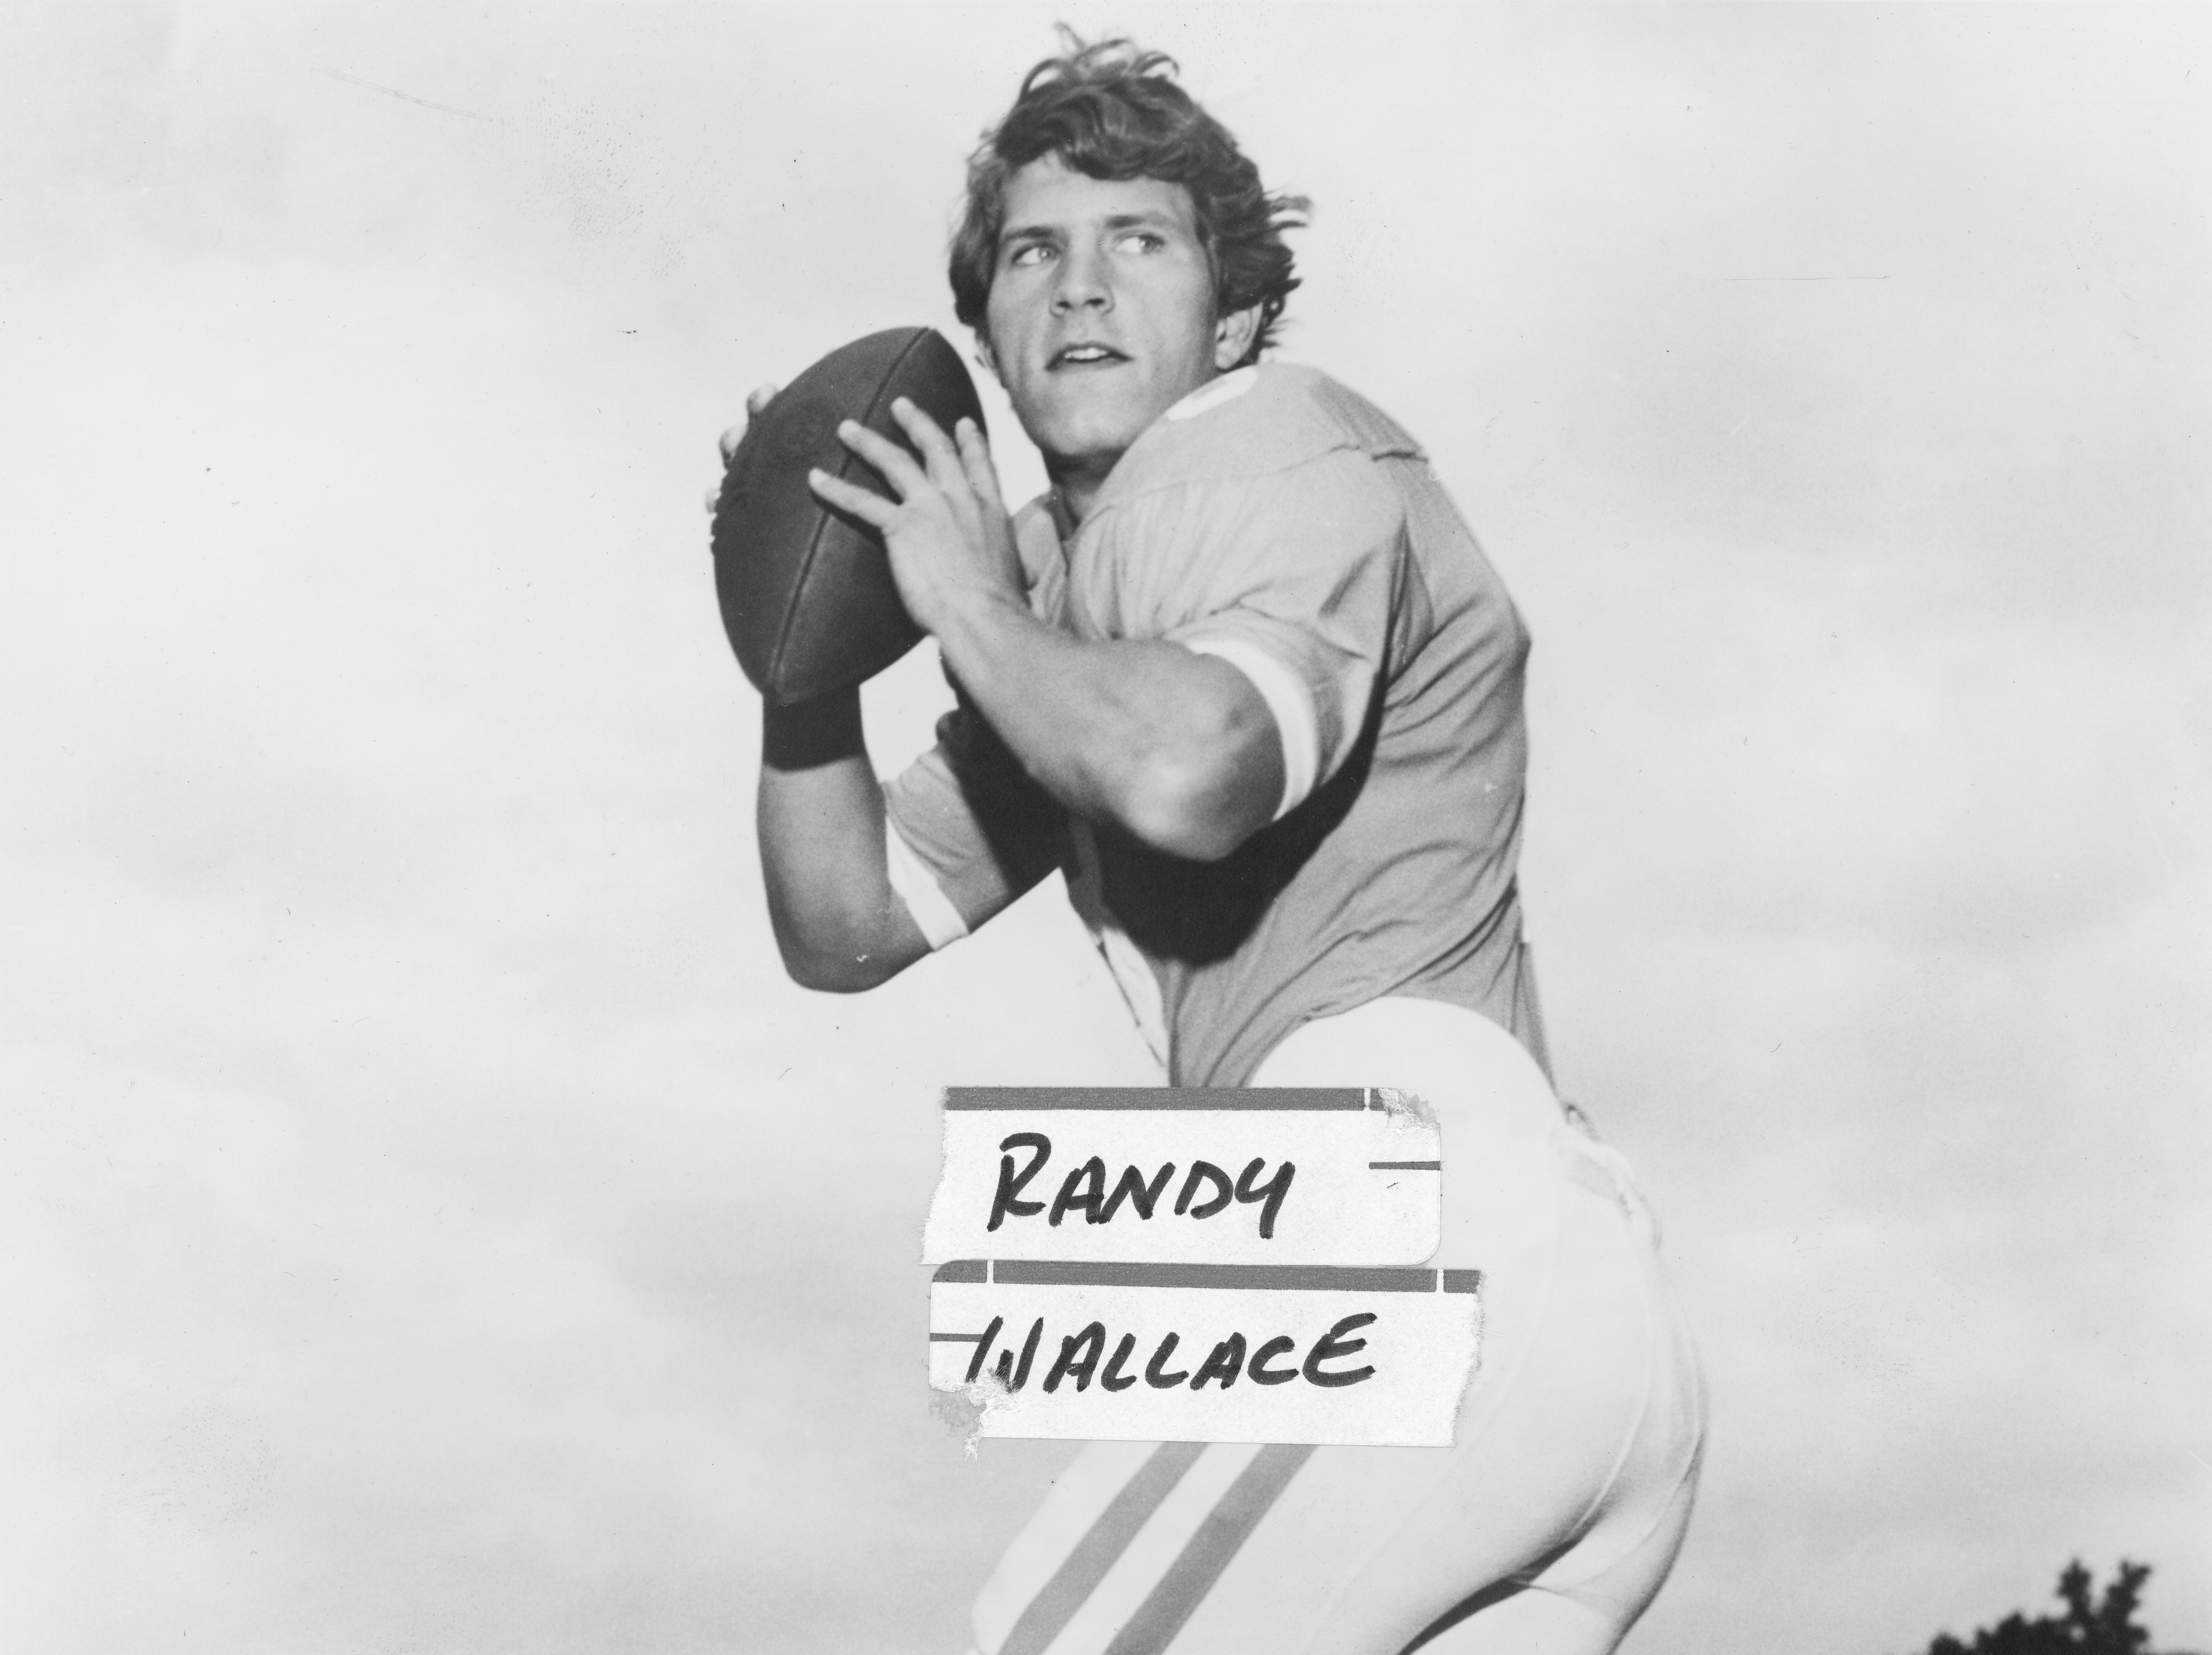 Tennessee Vols quarterback Randy Wallace on September 17, 1974.